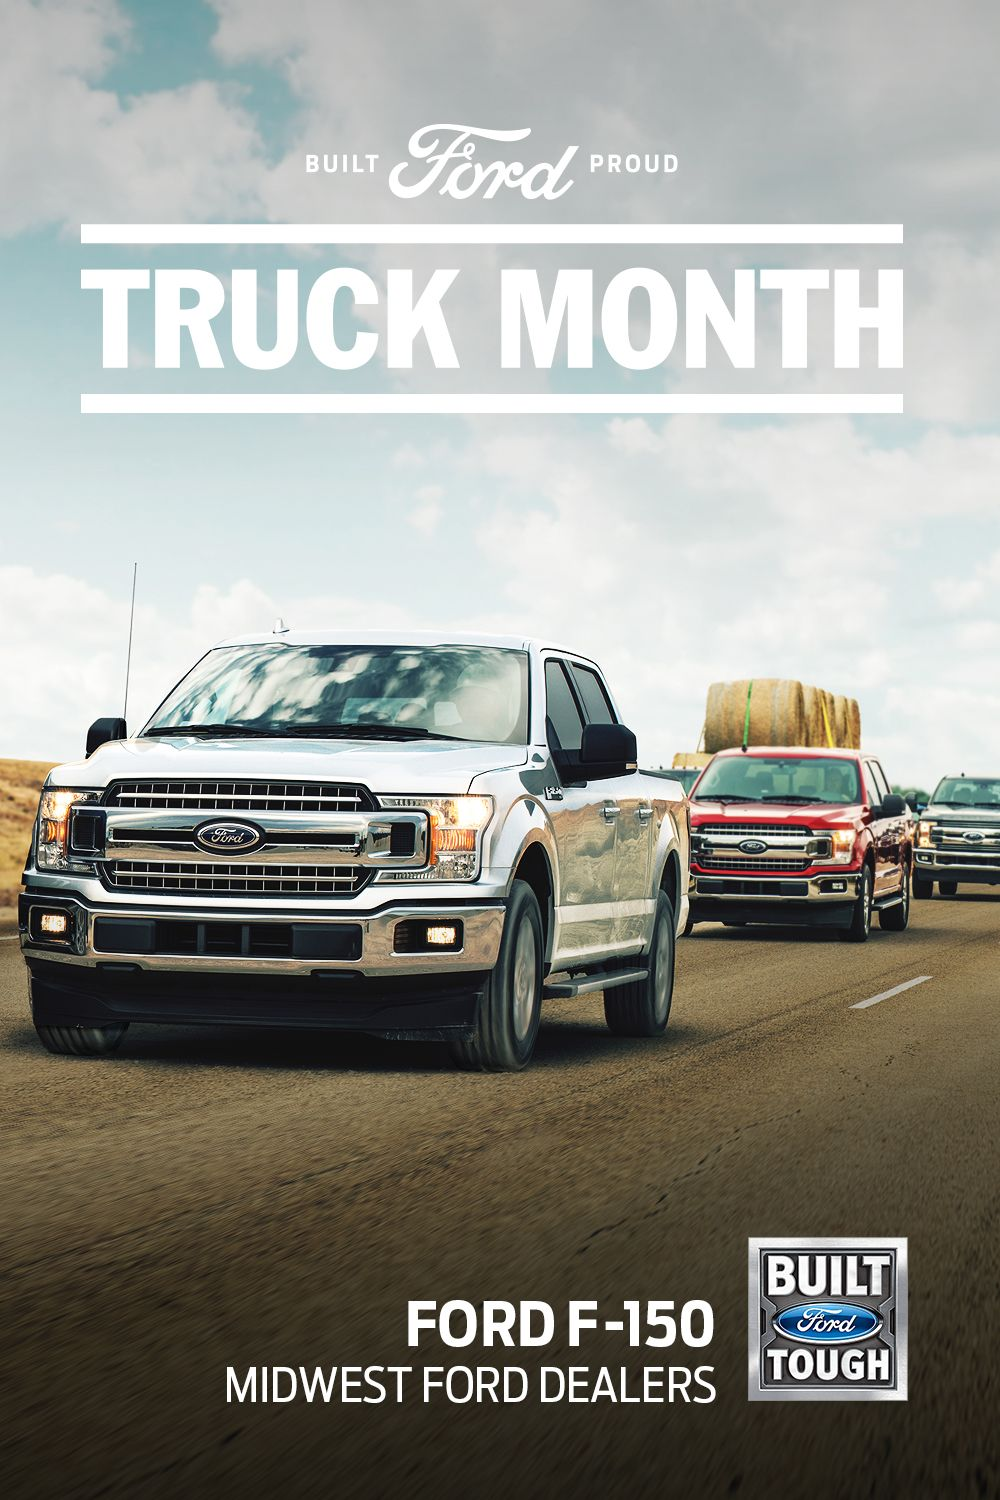 Get Into Truck Month Today To Save On A Built Ford Tough F 150